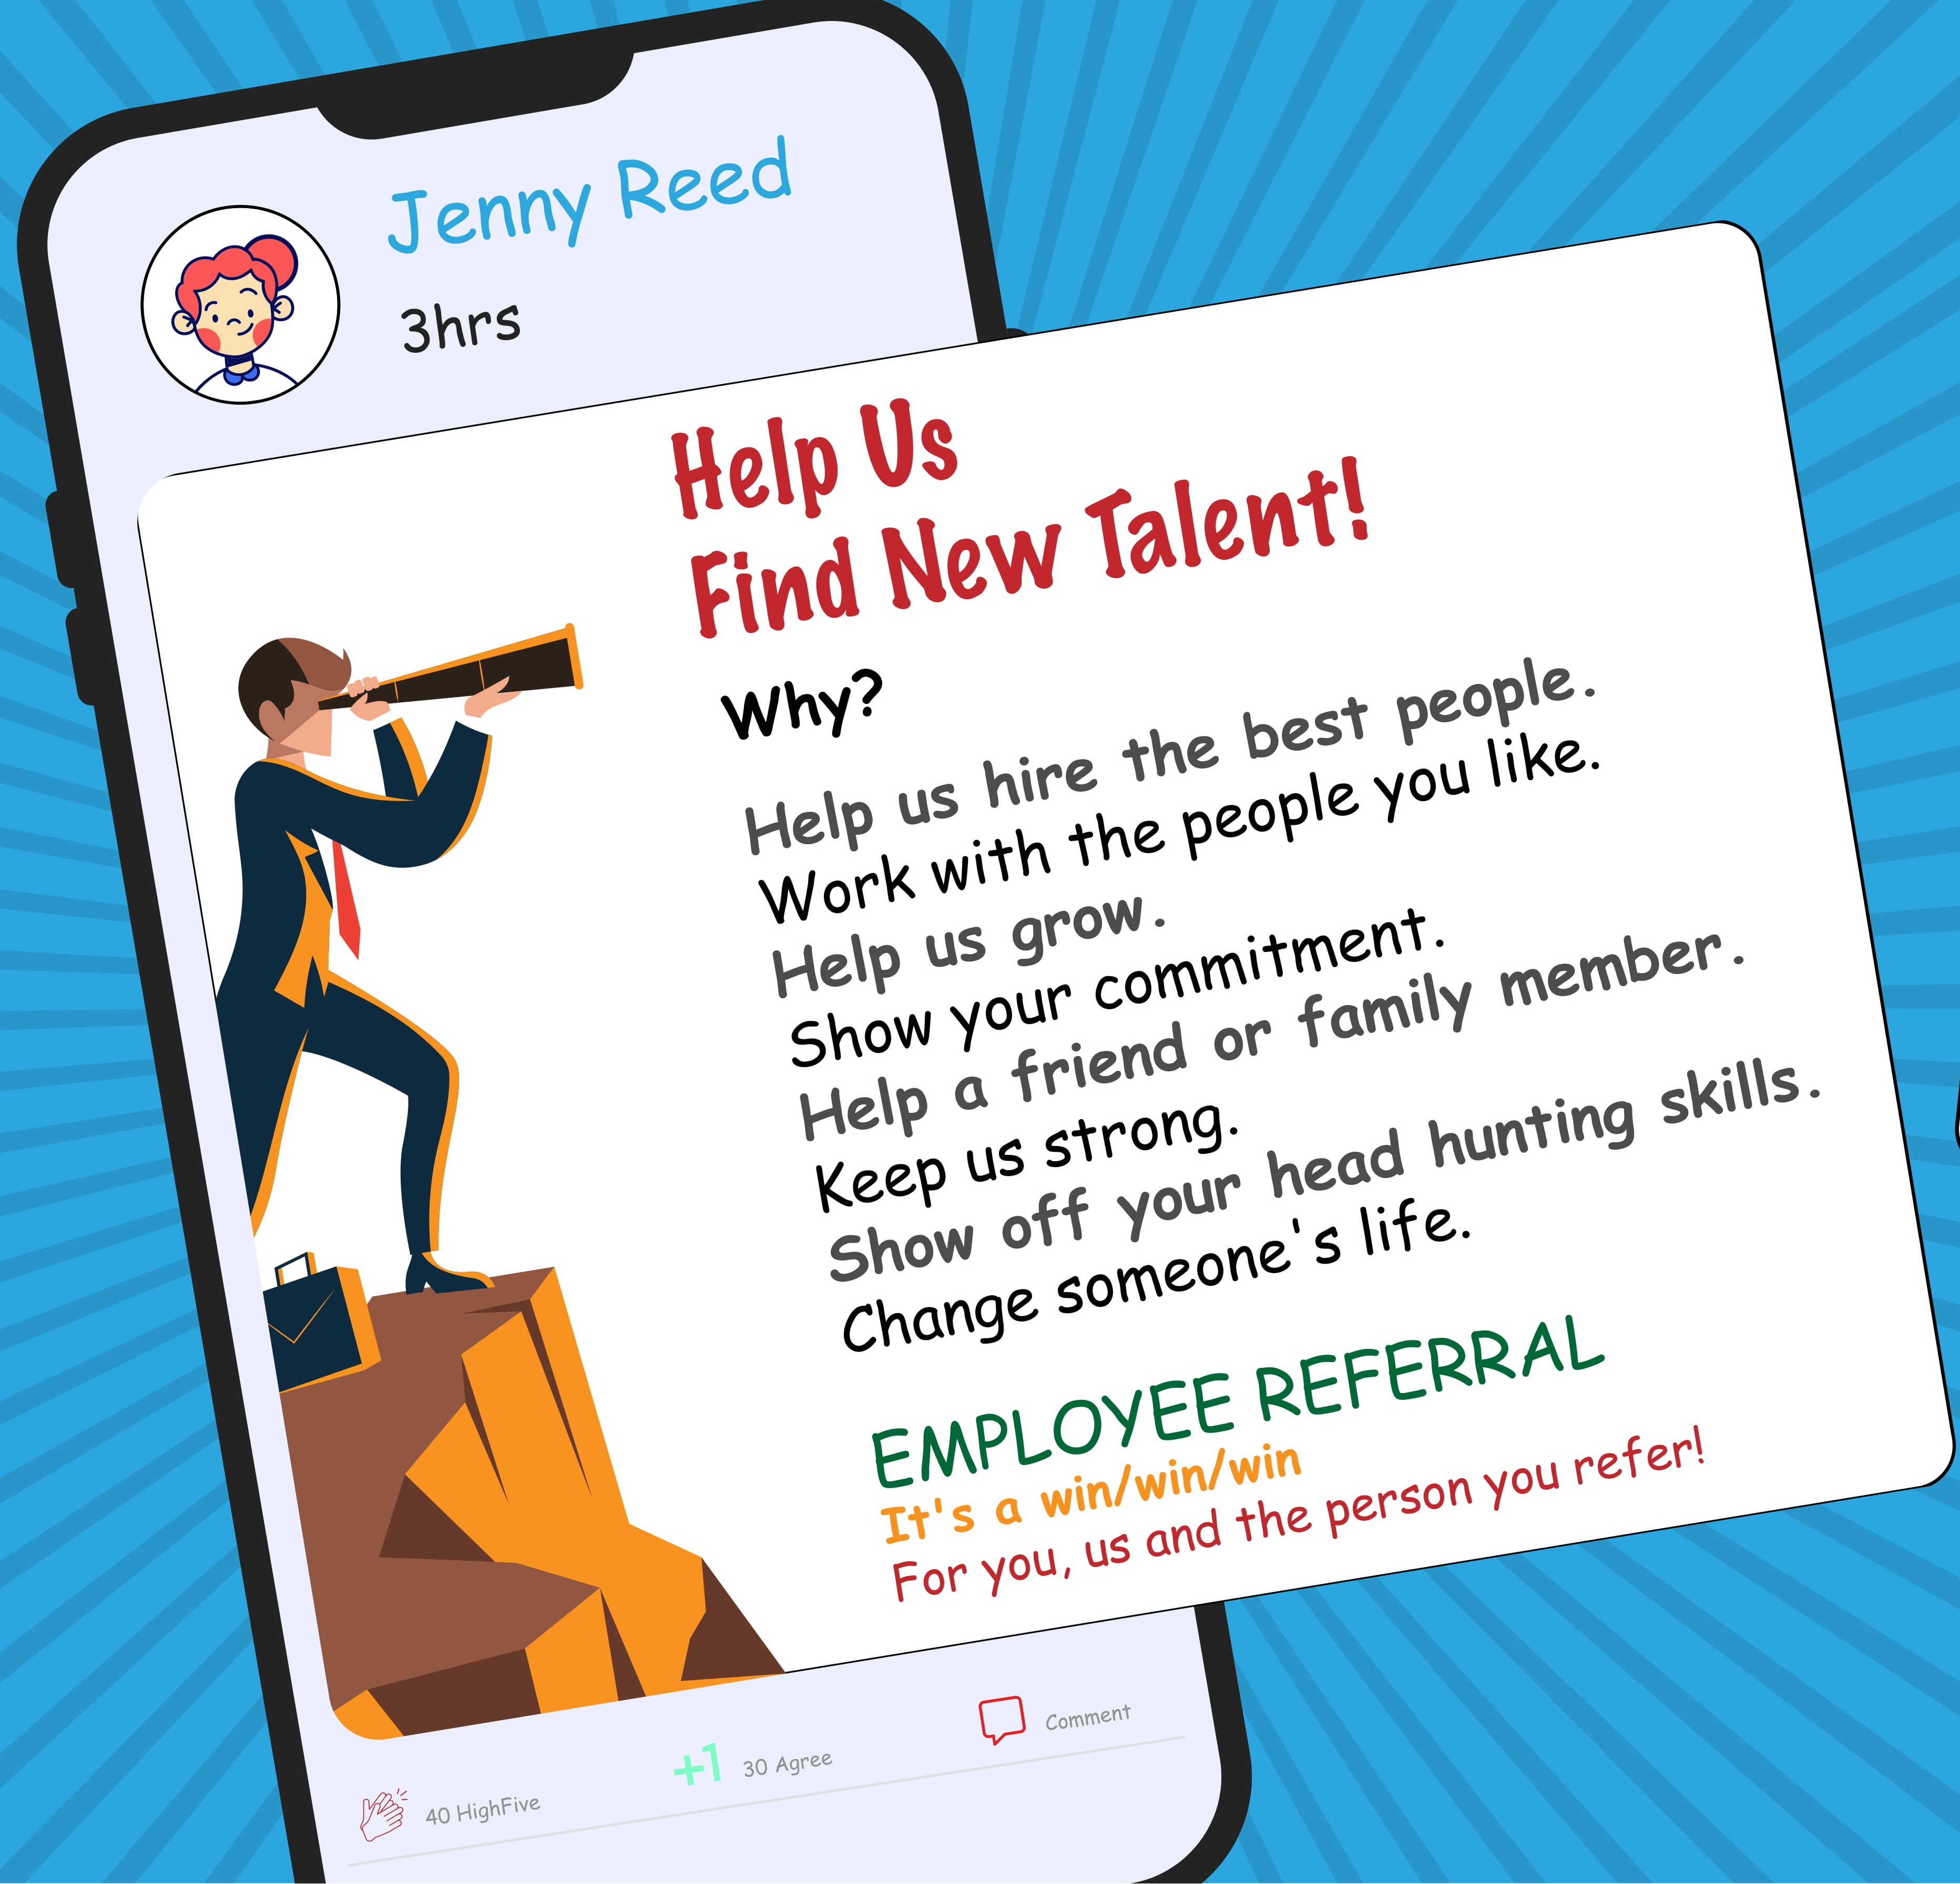 Employee referral